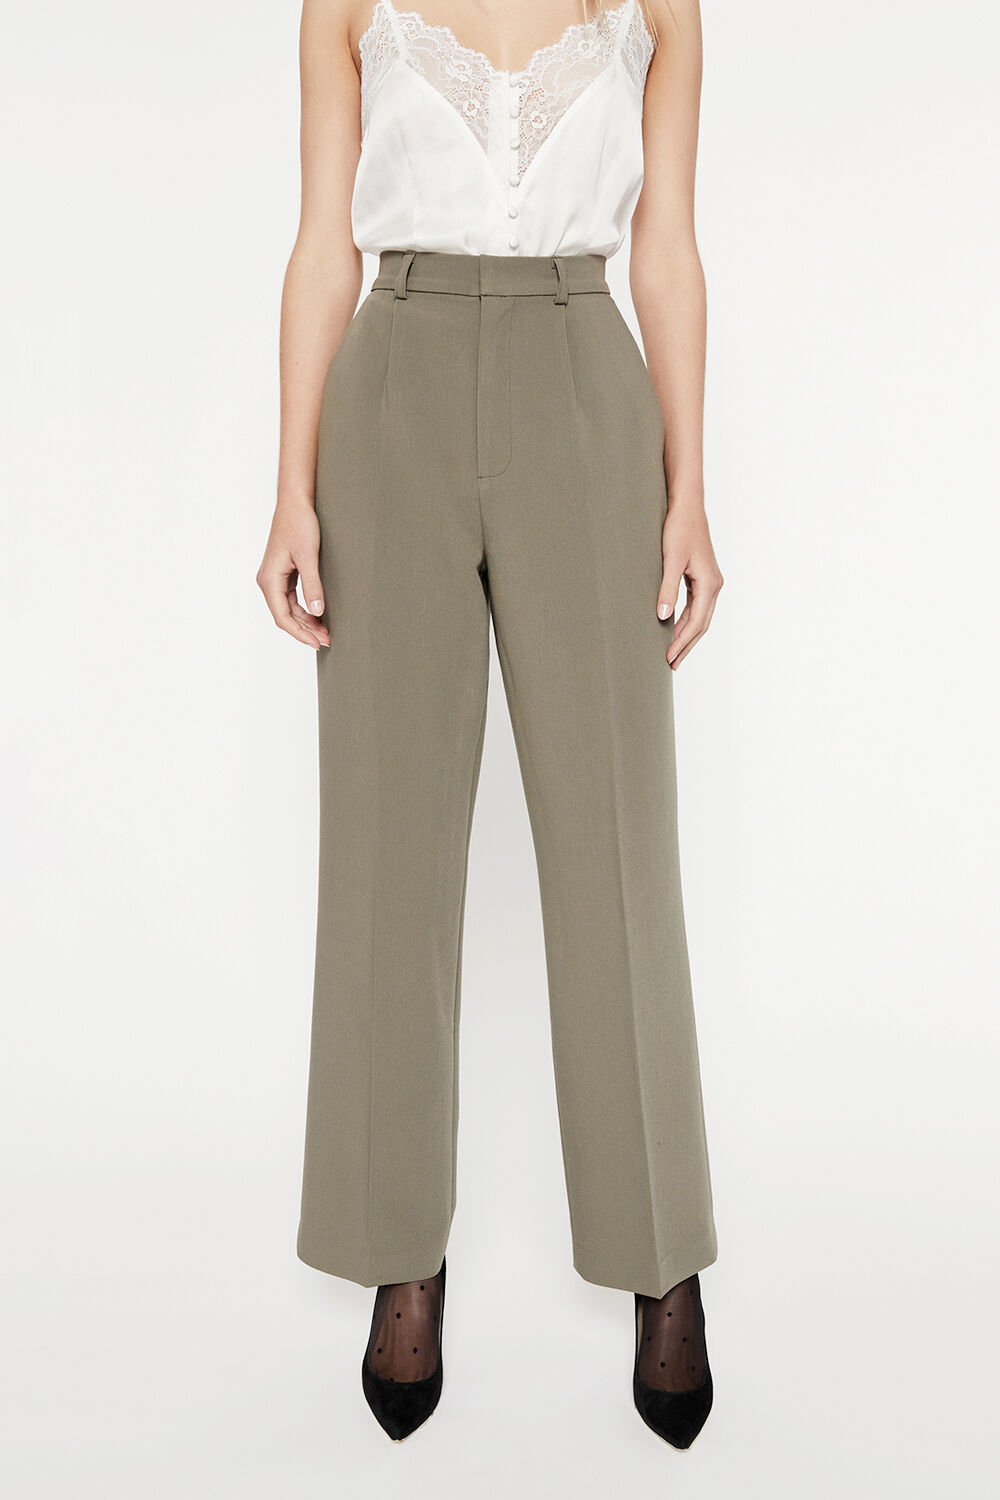 MAISON STRAIGHT LEG PANT in colour IVY GREEN